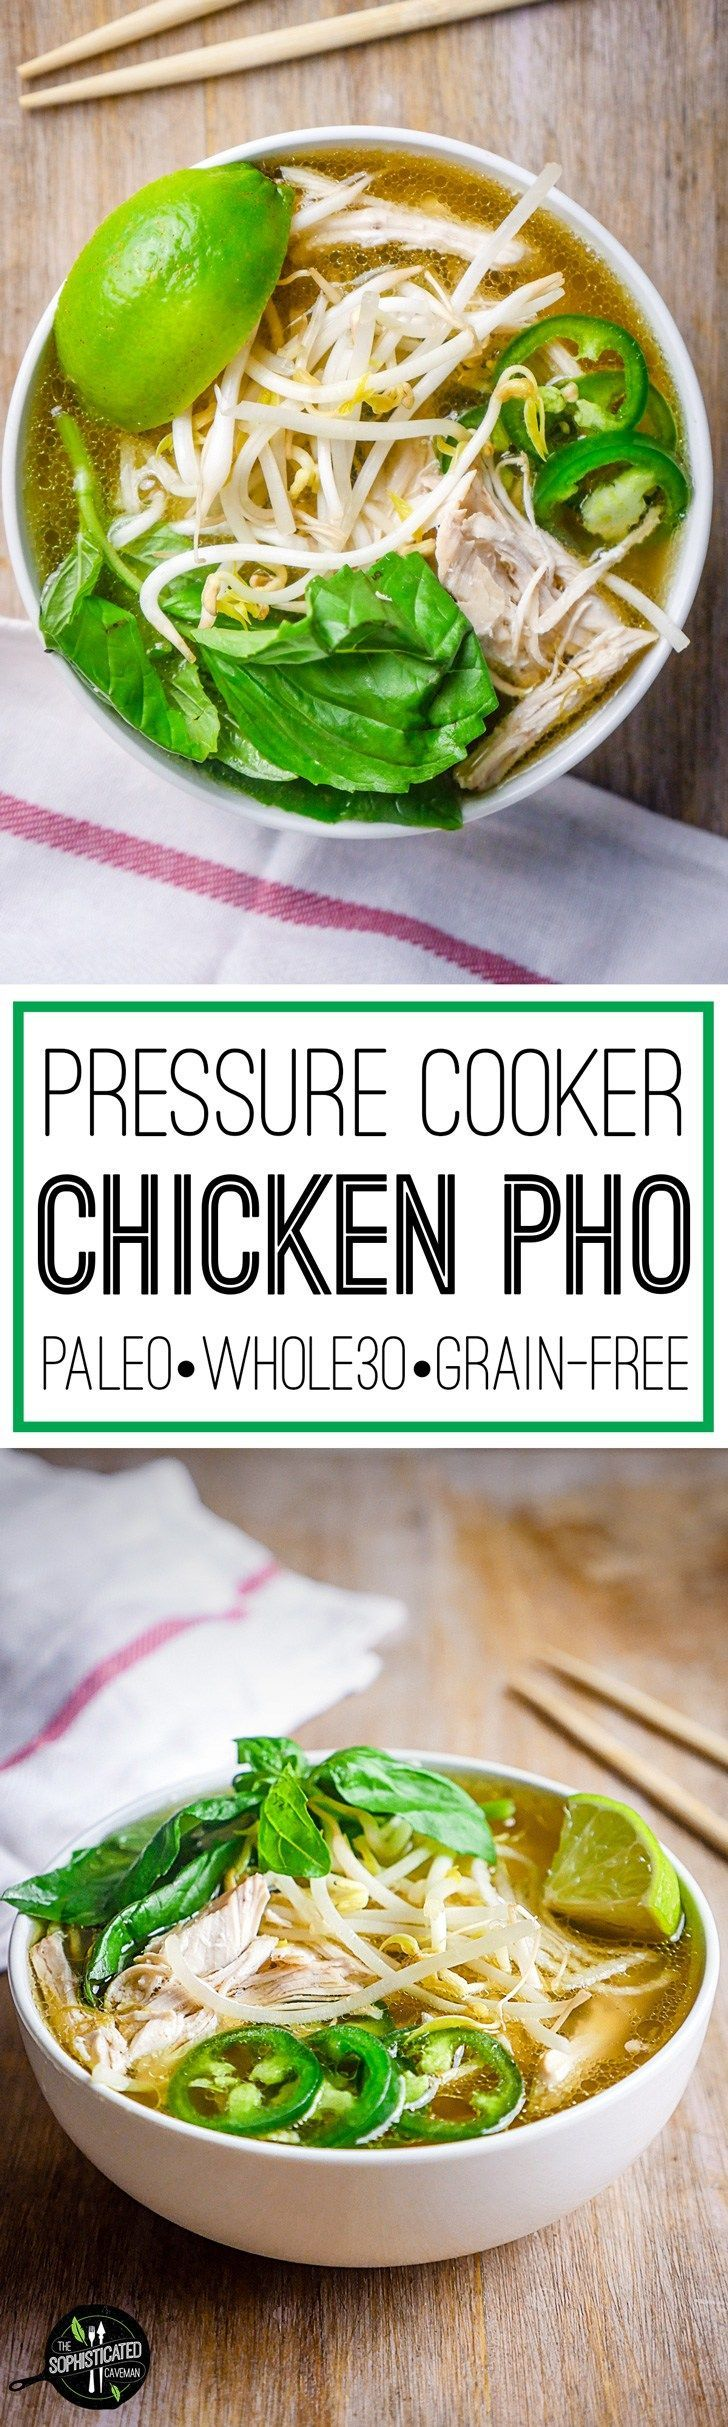 Easy recipe for Pressure Cooker Chicken Faux Pho. Spiralized daikon serves as the noodles for this complete Whole30 and Paleo meal.